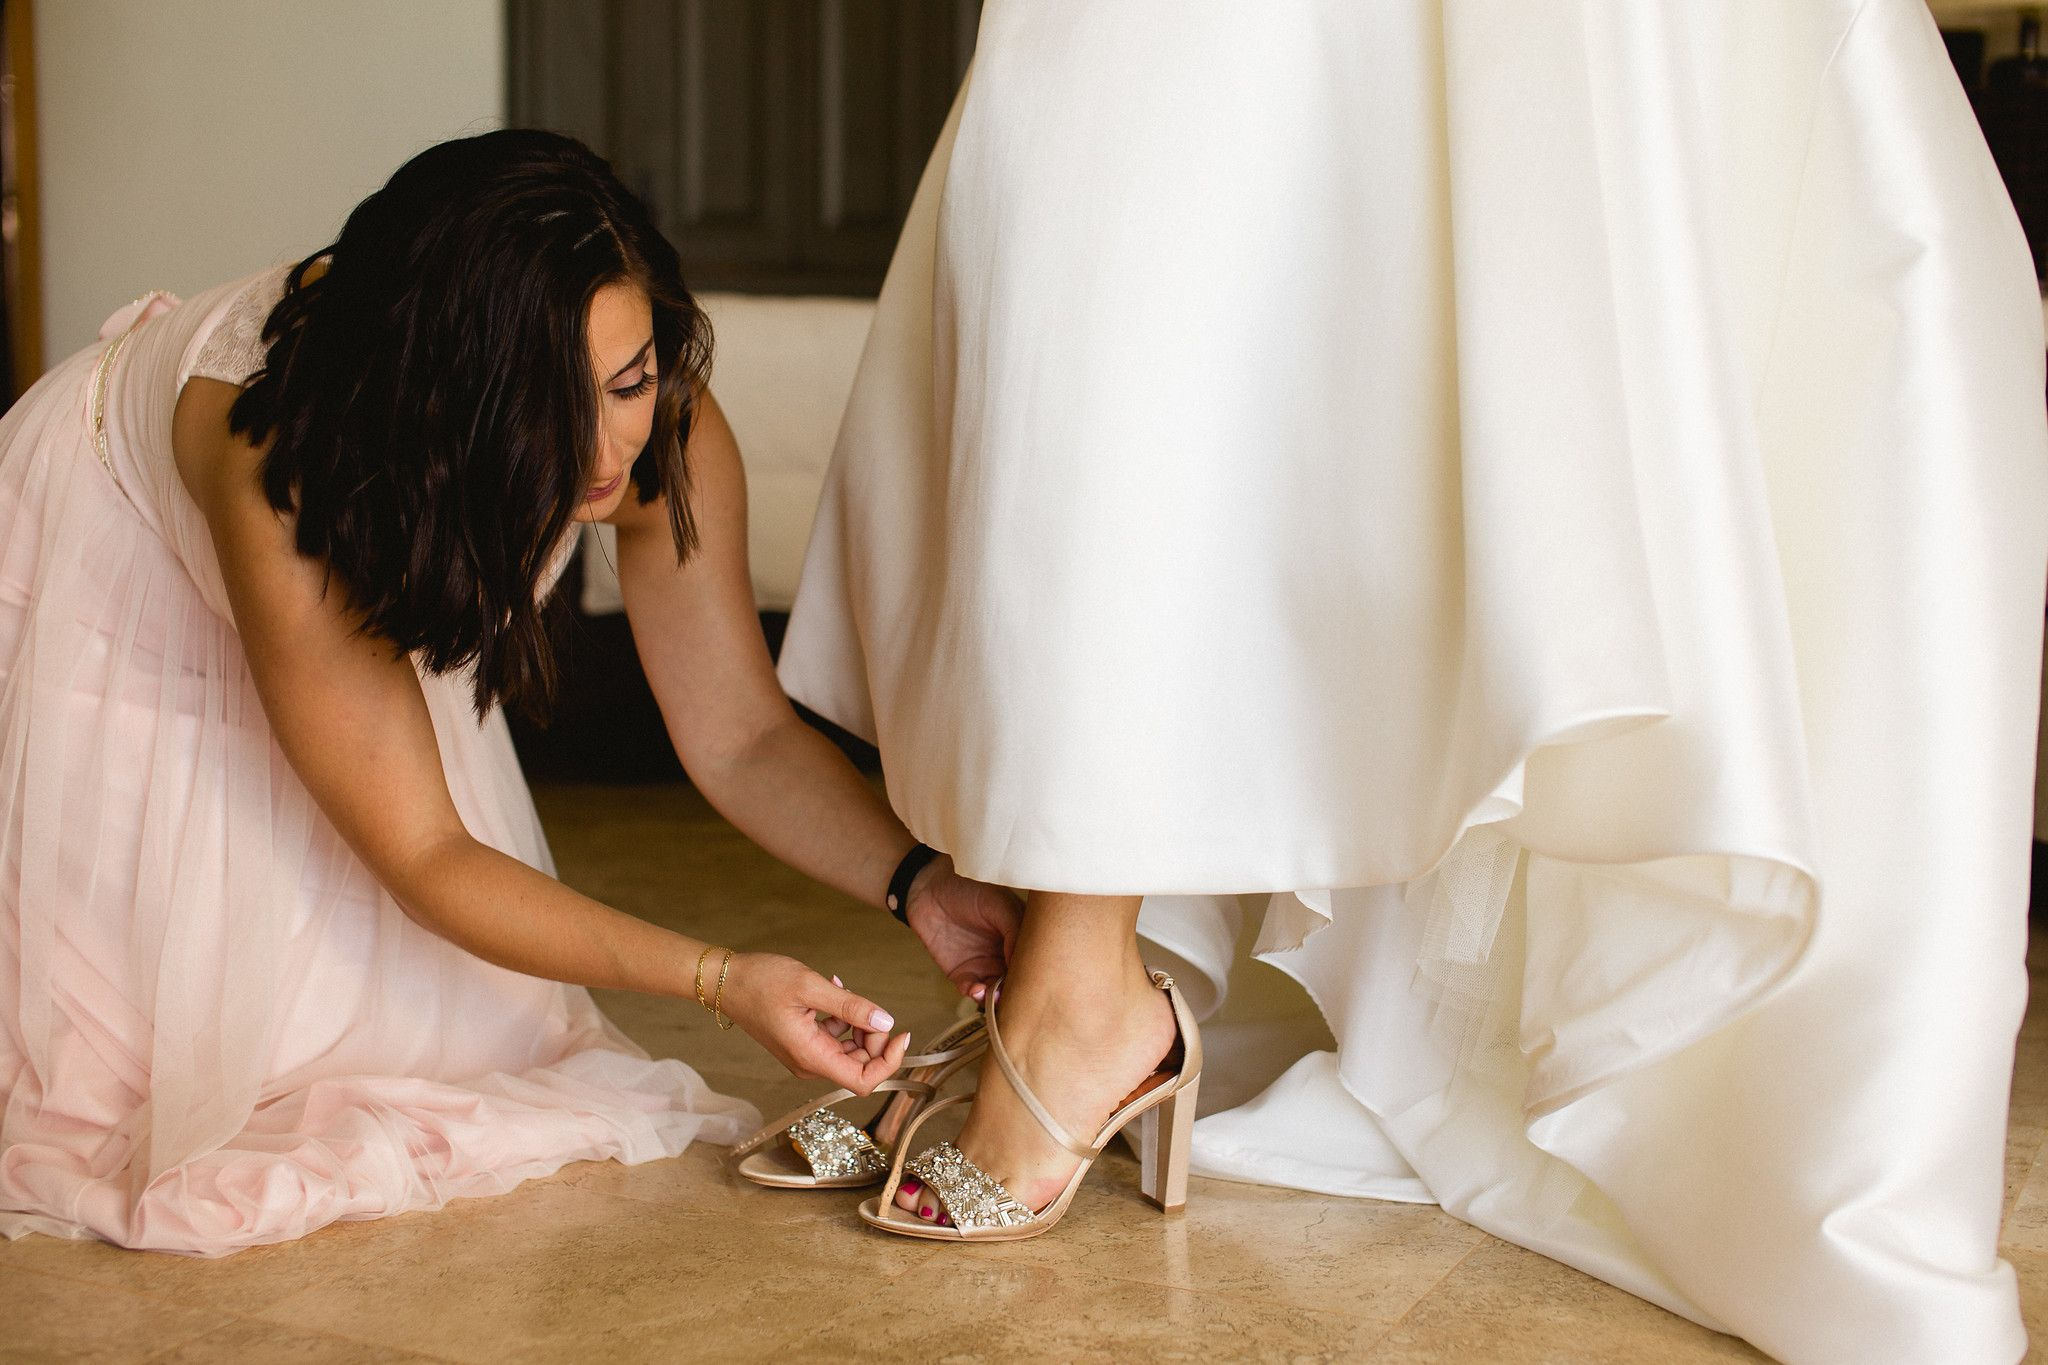 Maid of Honor helping the Bride to get ready and put her shoes on. She got ready at Hilton Los Cabos with all of her family and friends in Cabo San Lucas Mexico, with Cabo Wedding Services helping her plan and design her wedding day